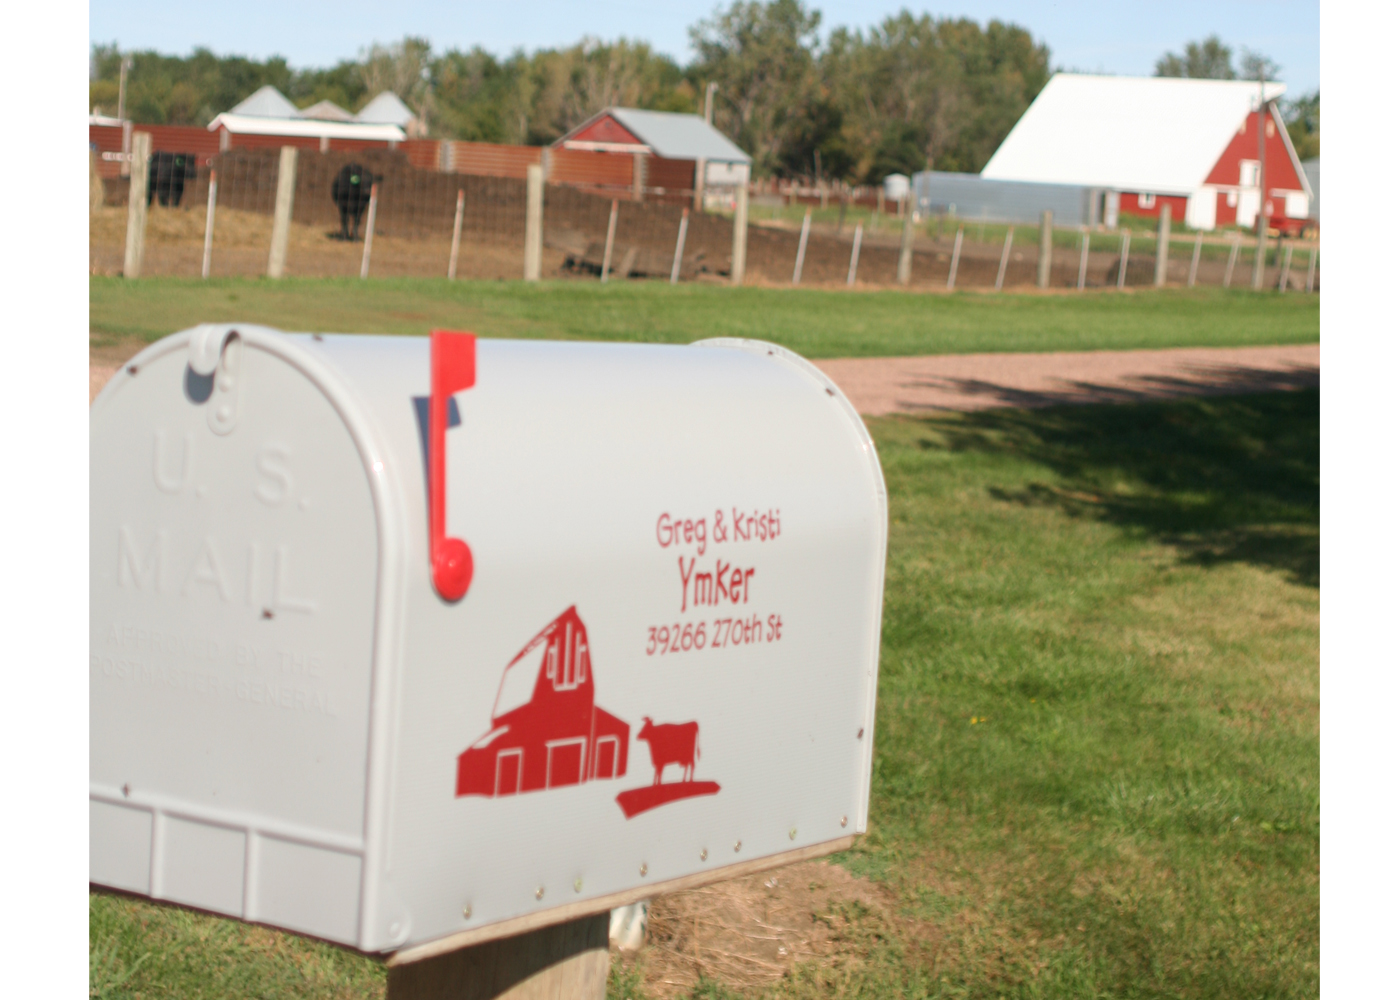 farm-scene-with-address-vinyl-decal-on-white-mailbox.jpg